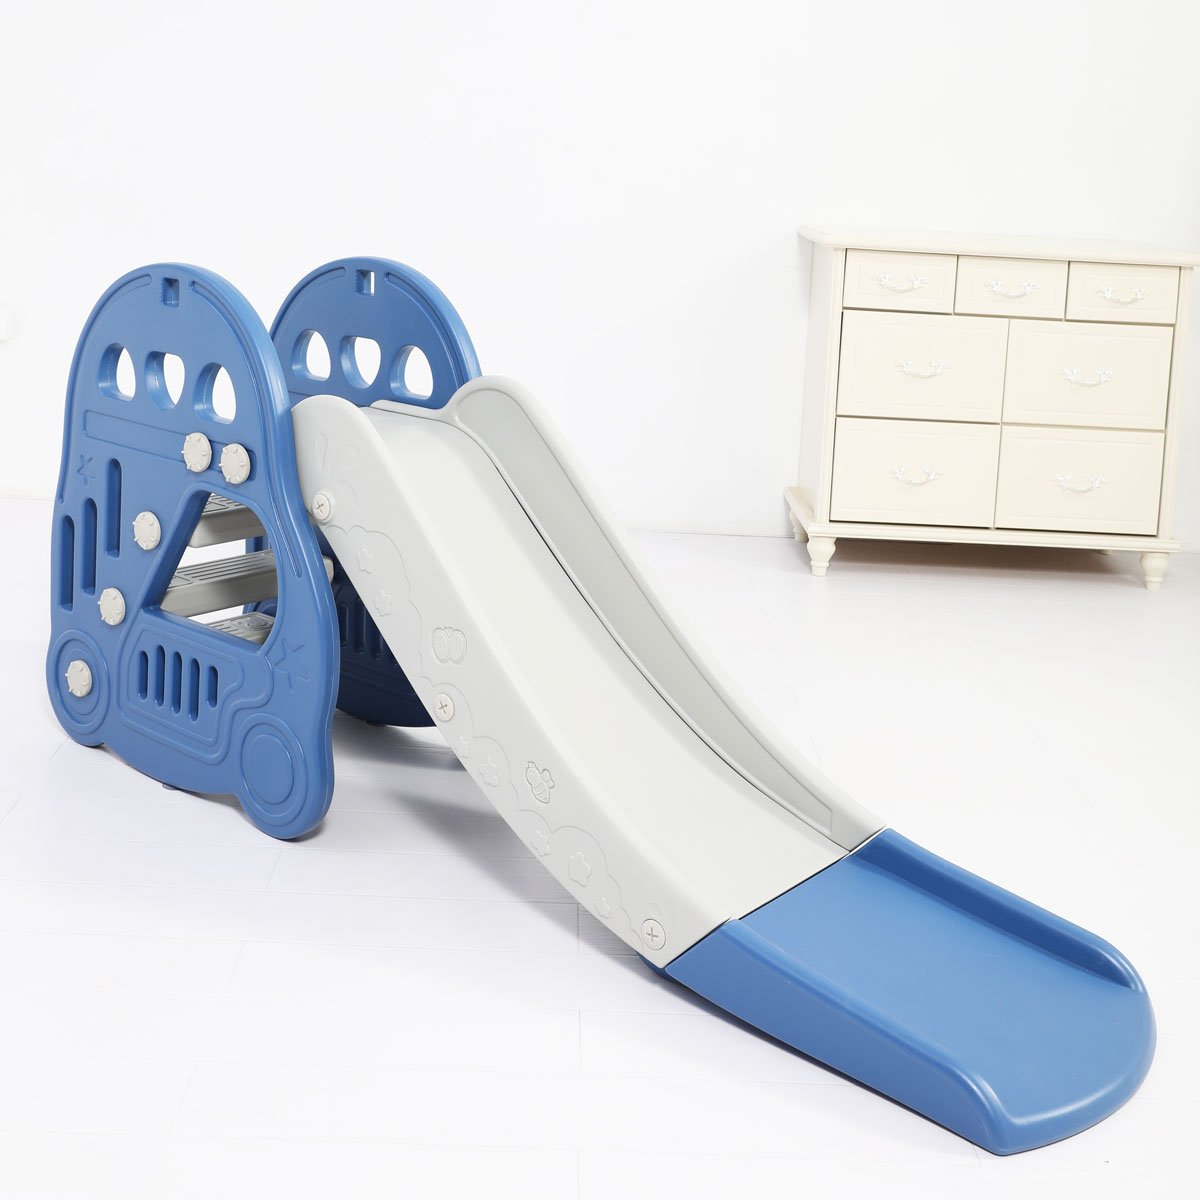 Large Kids Slide Basketball Hoop Indoor Play Slide Set Home Playground